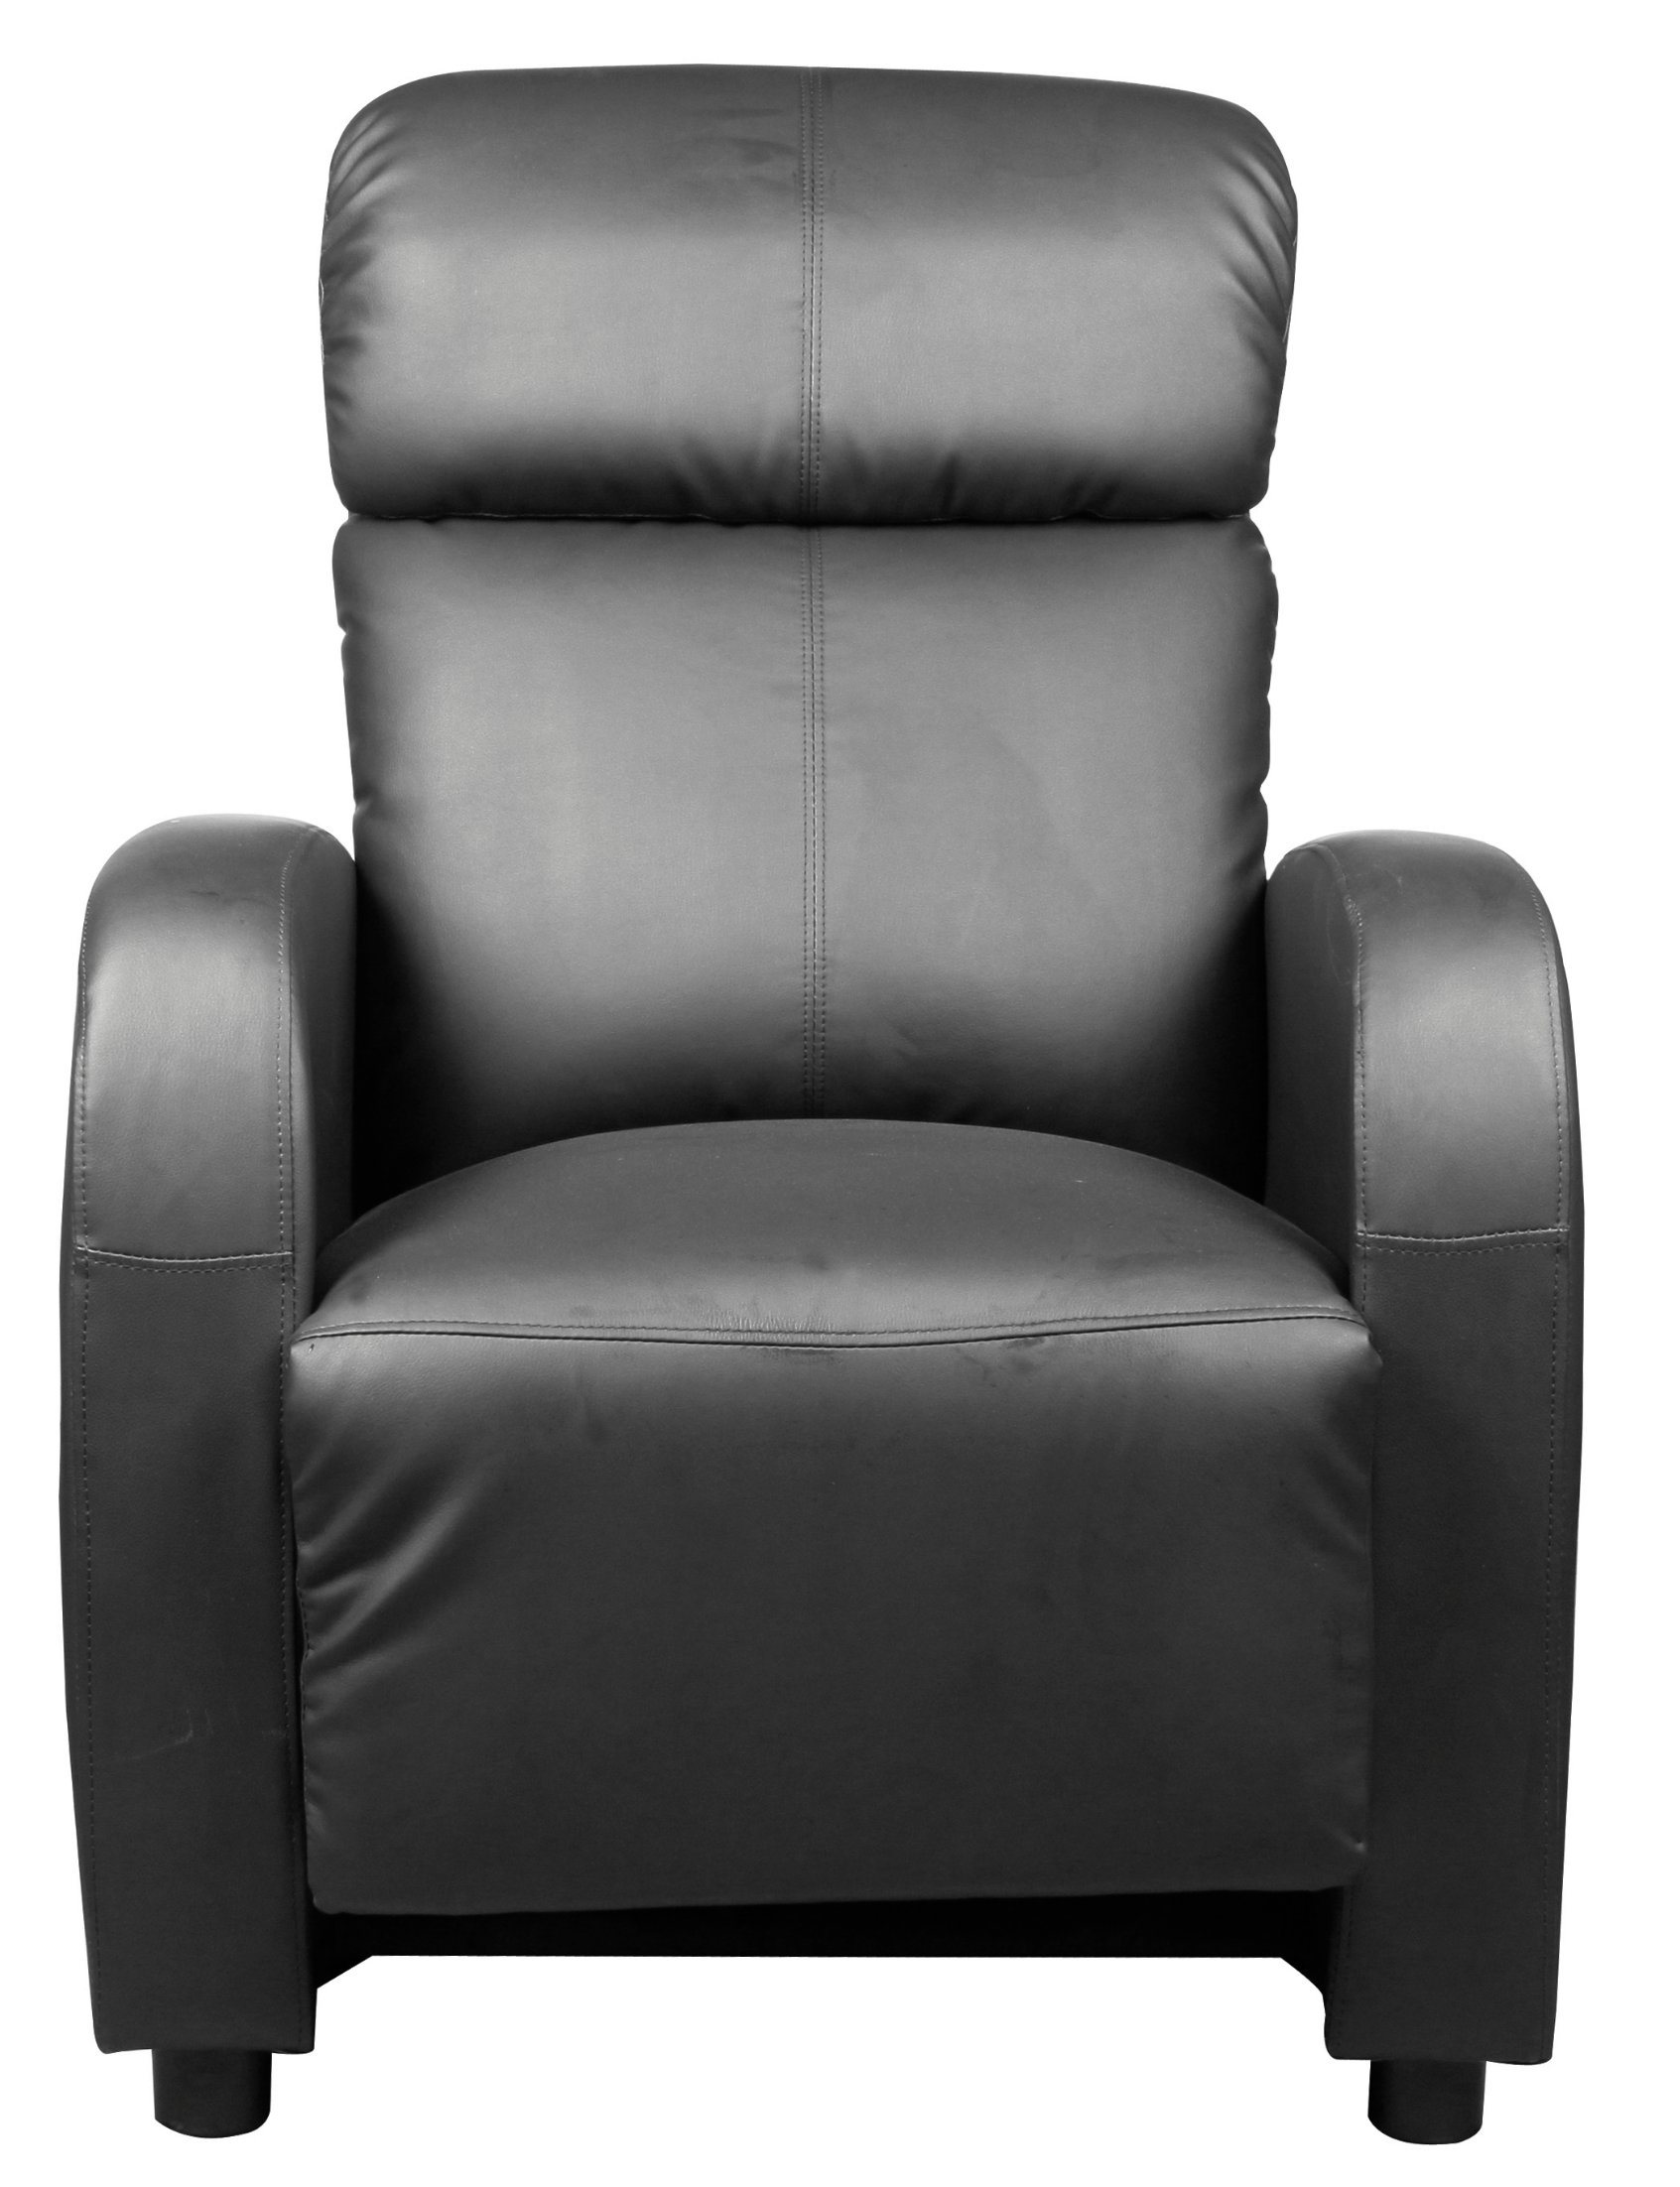 Recliner Lounger Modern House